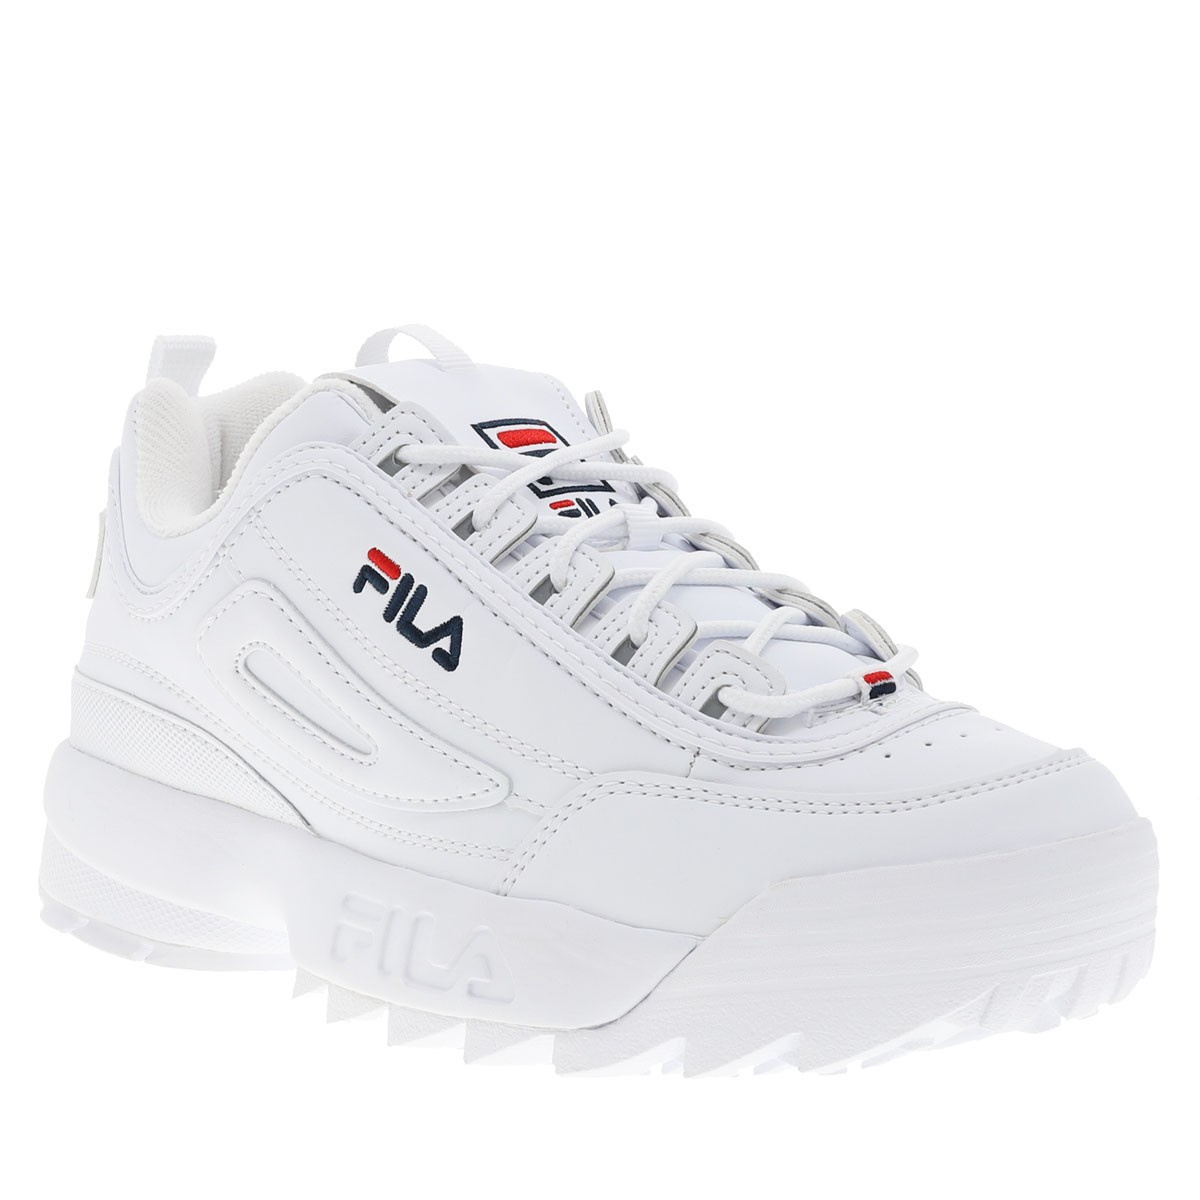 Wcxqvs Baskets Ccv Homme Mode Blanches Fila Disruptor q6Cd0Y5